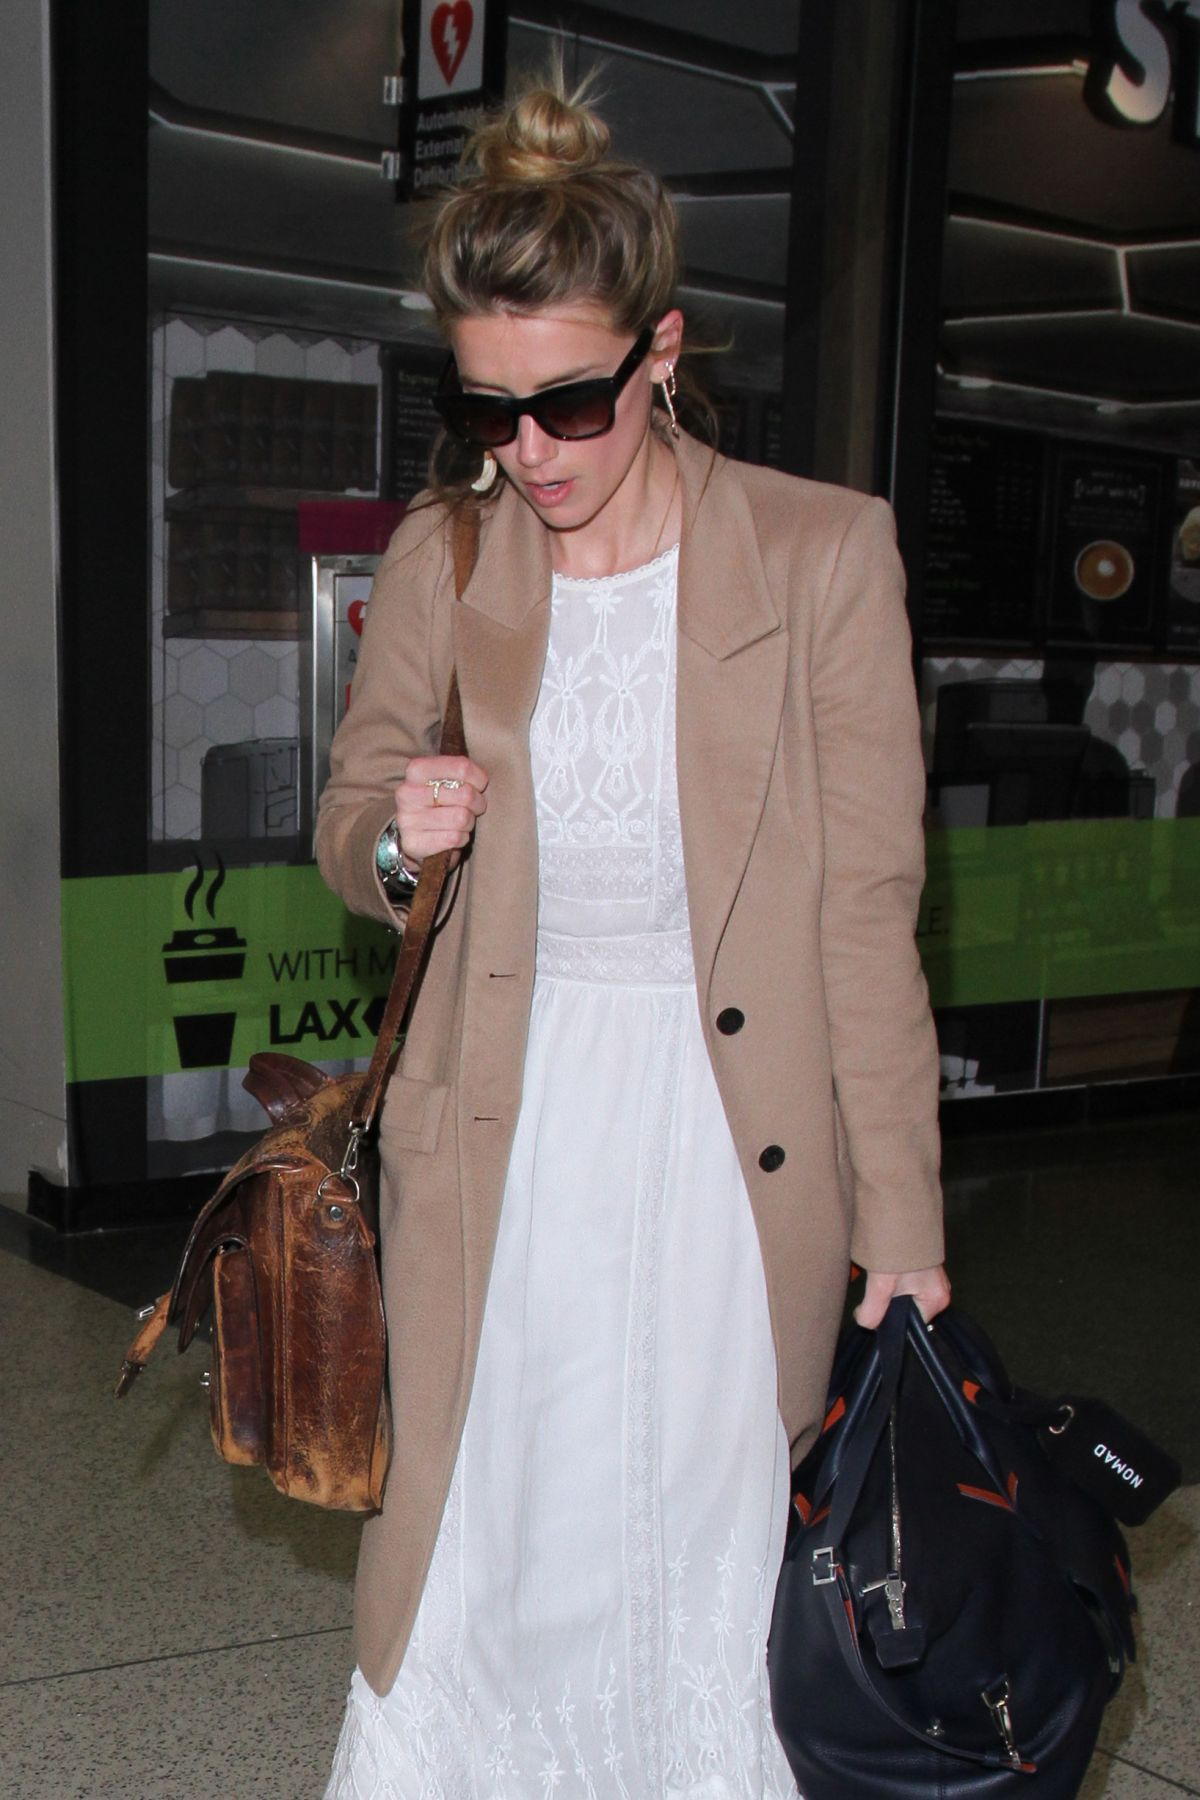 AMBER HEARD at LAX Airport in Los Angeles 05/18/2016